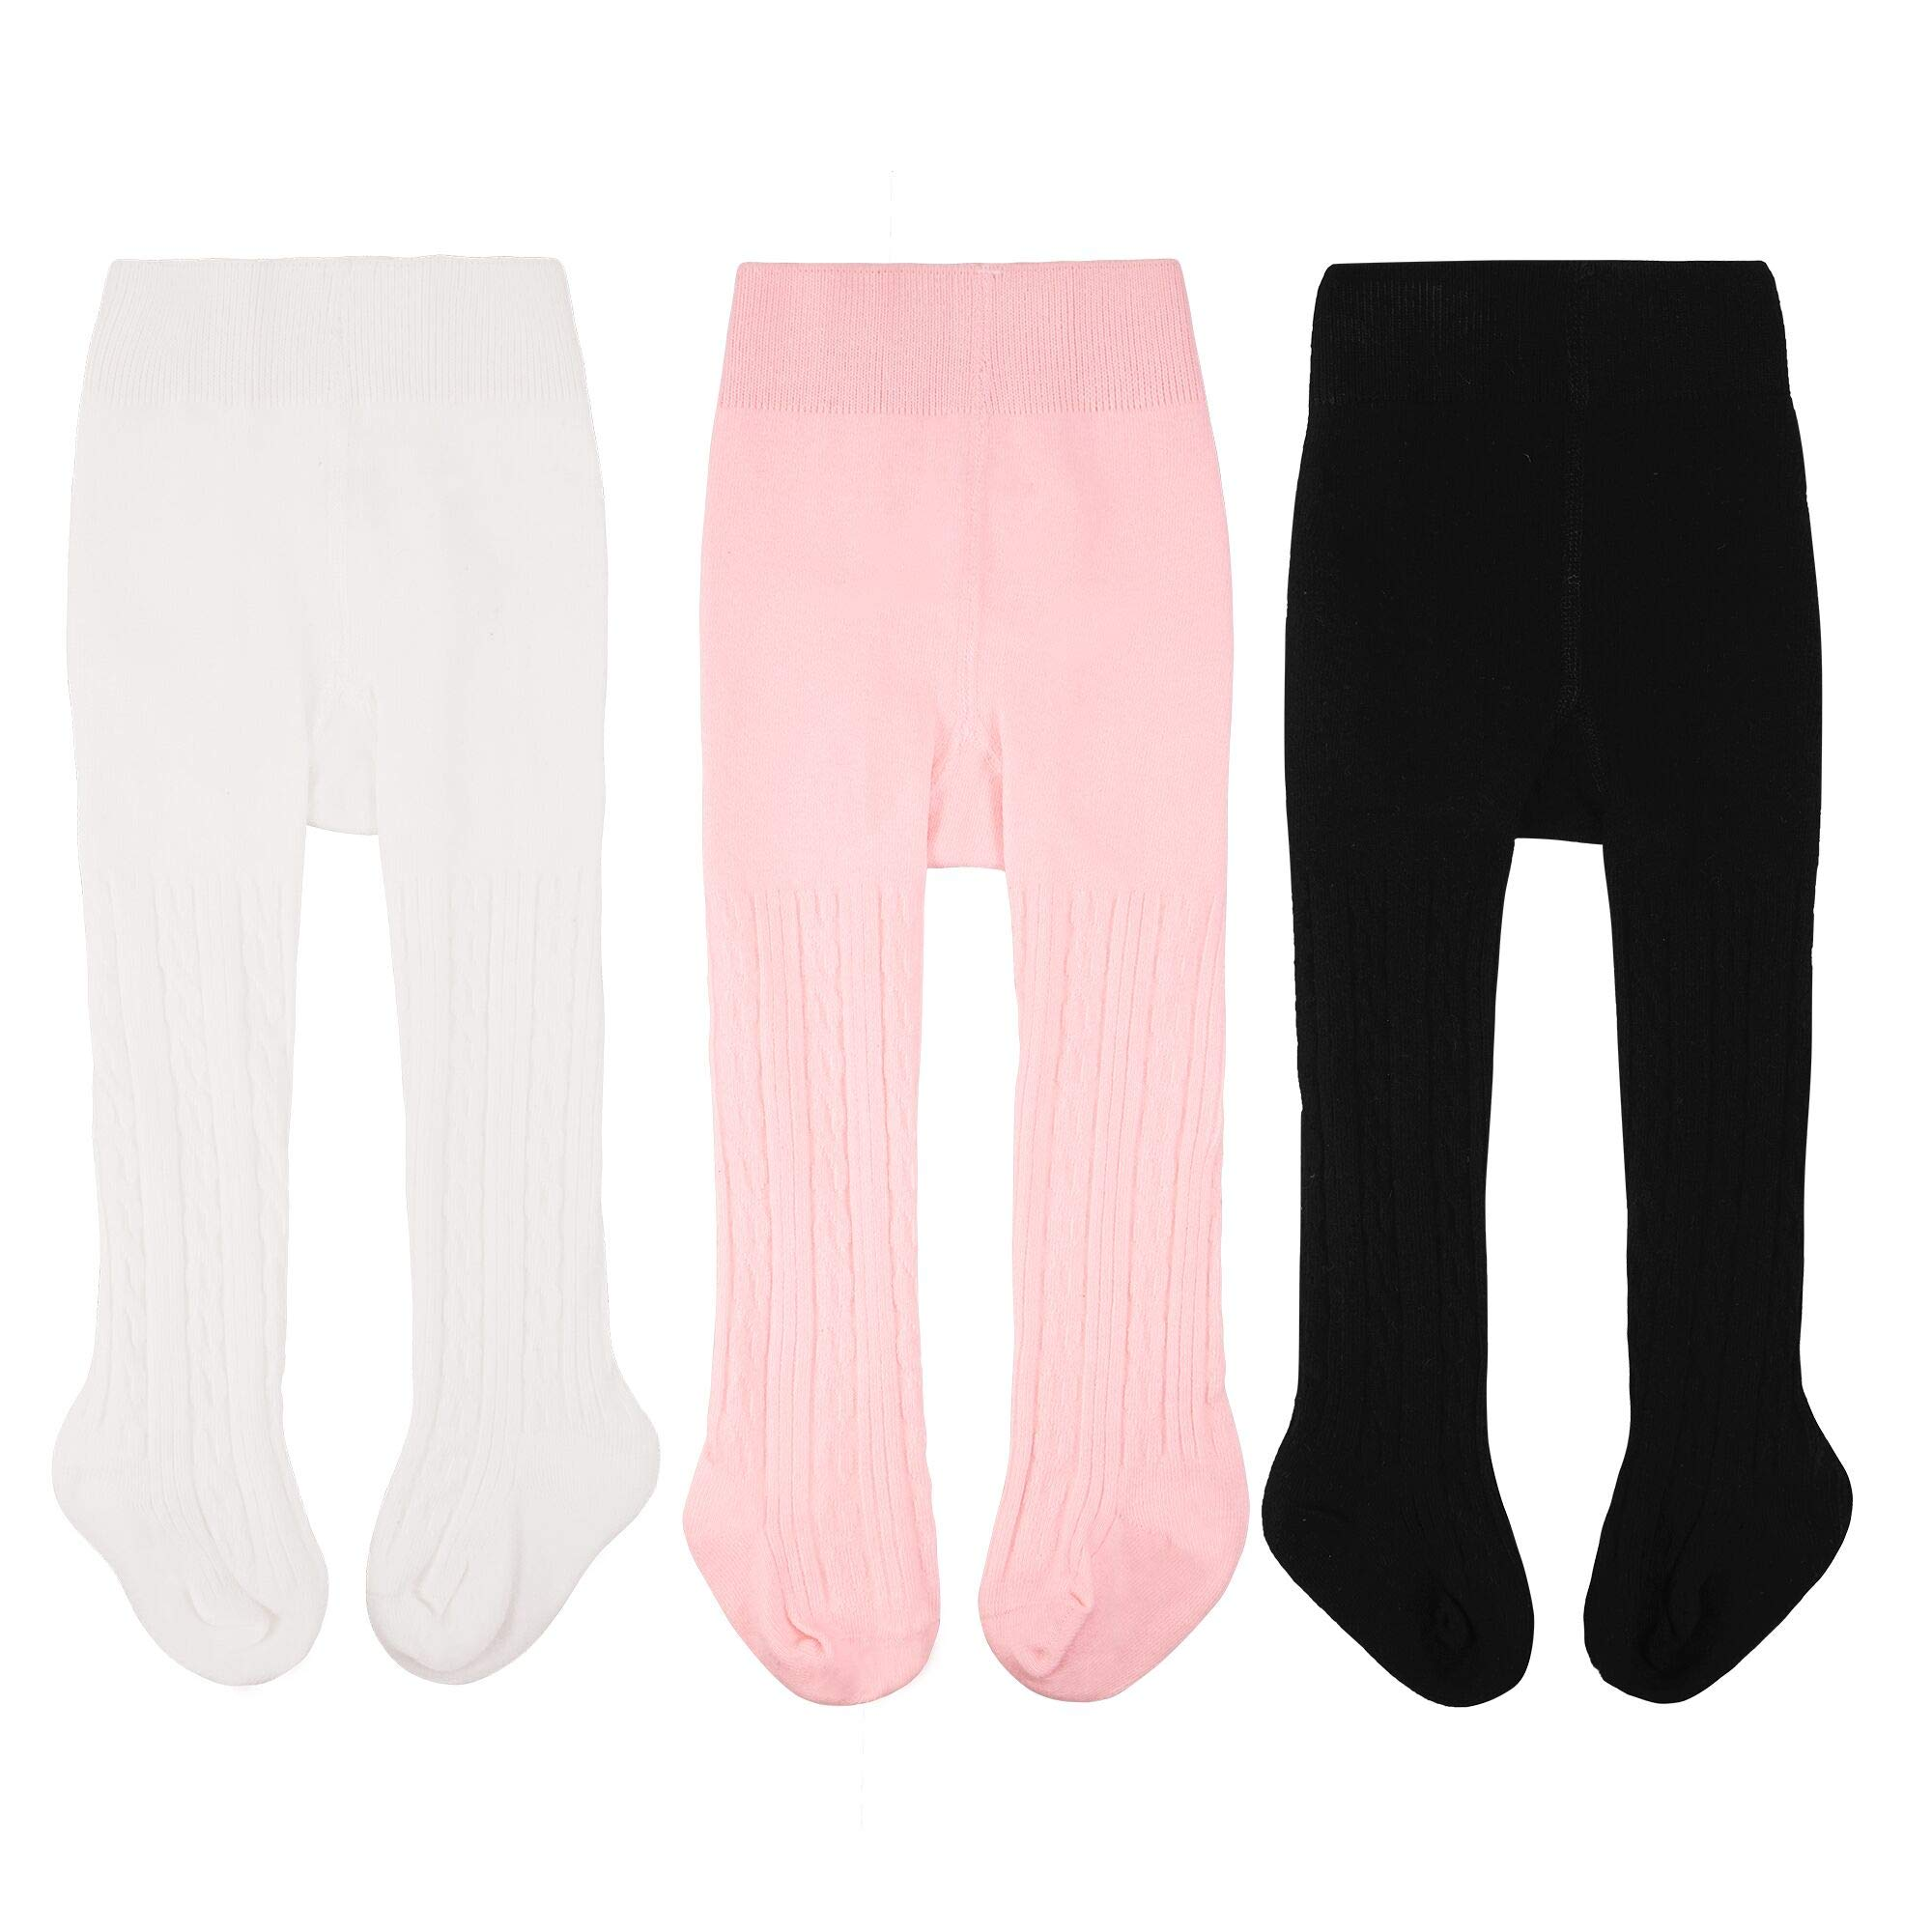 2035eced5eb56 CozyWay Baby Tights Toddler Leggings Pantyhose for Baby Girls Seamless  Cable Knit Cotton Pants Stockings 0-4 Years